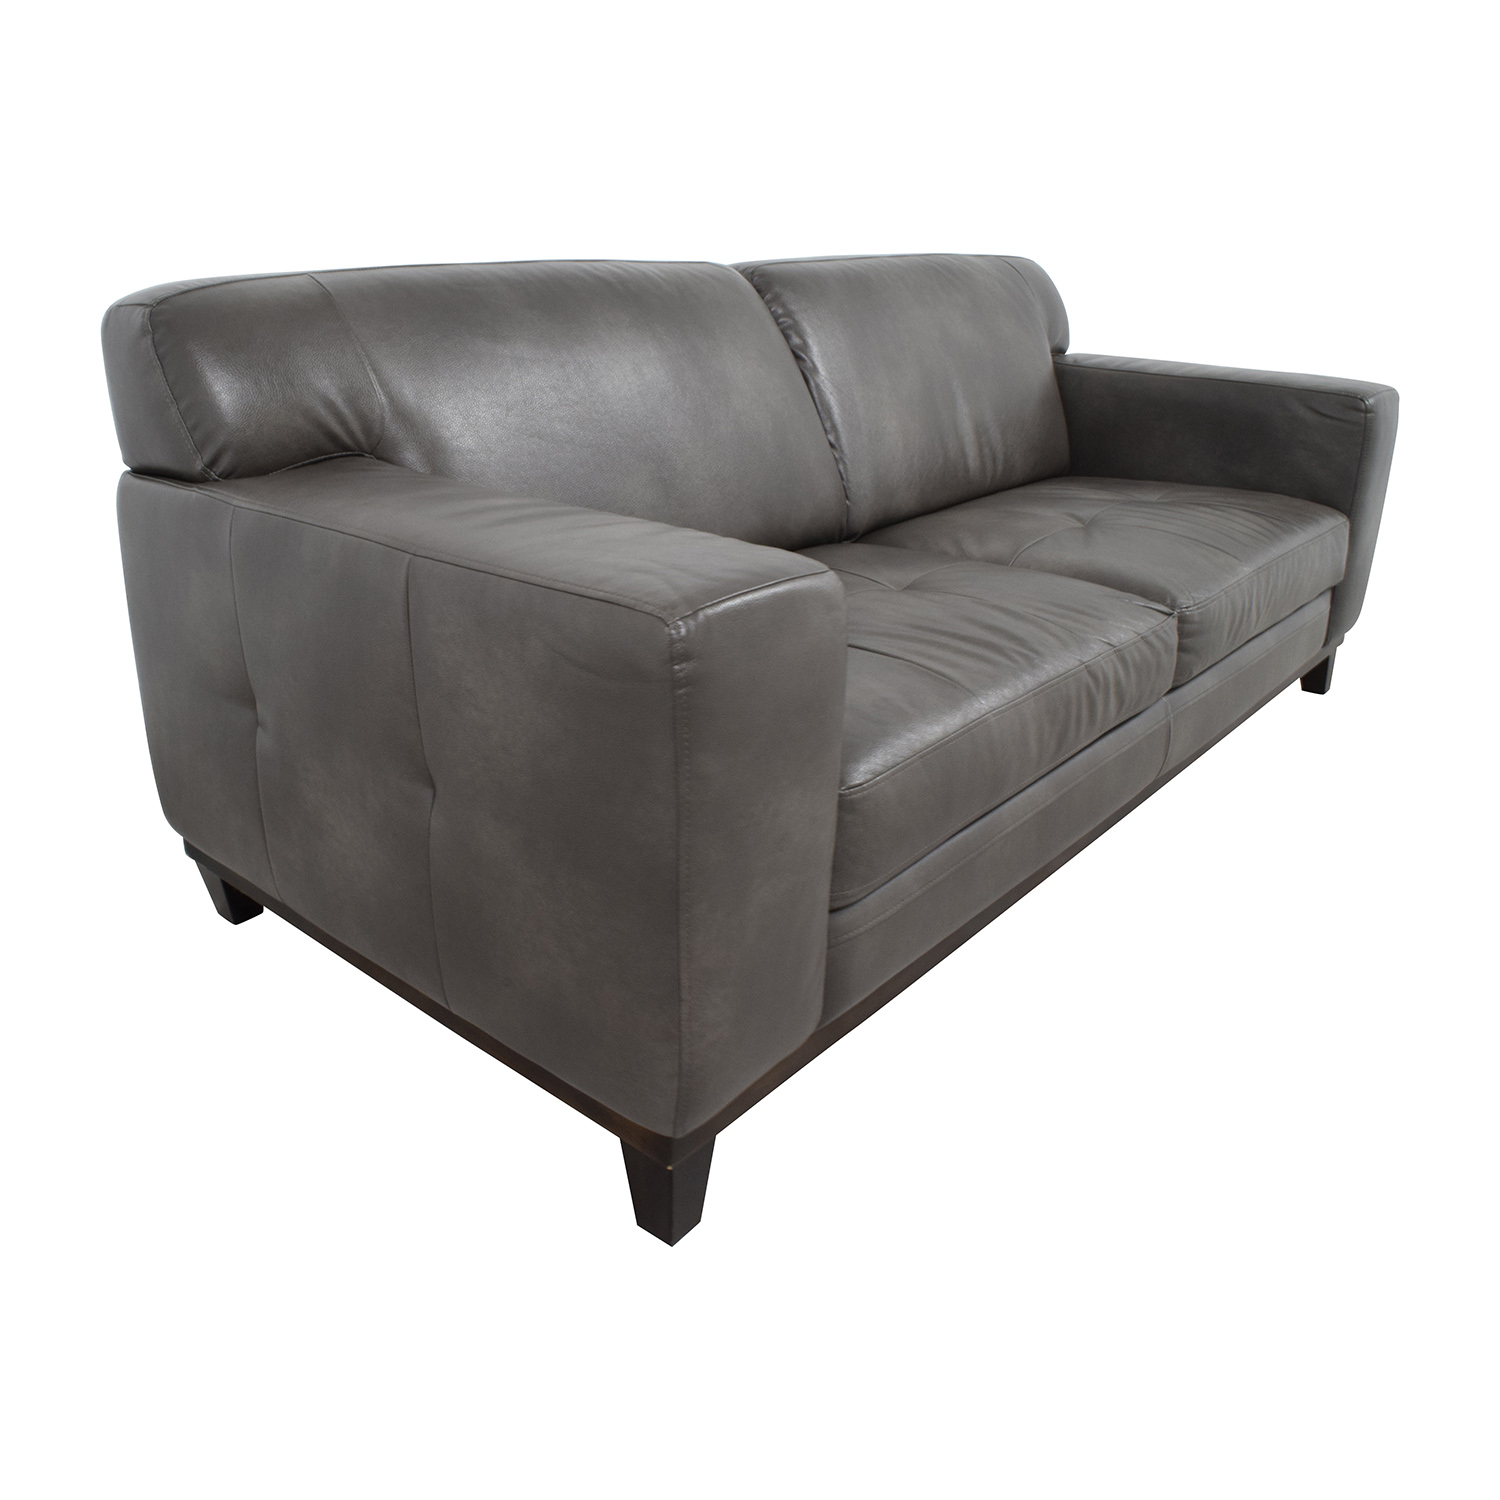 Raymour & Flanigan Raymour & Flanigan Grey Leather Couch dimensions